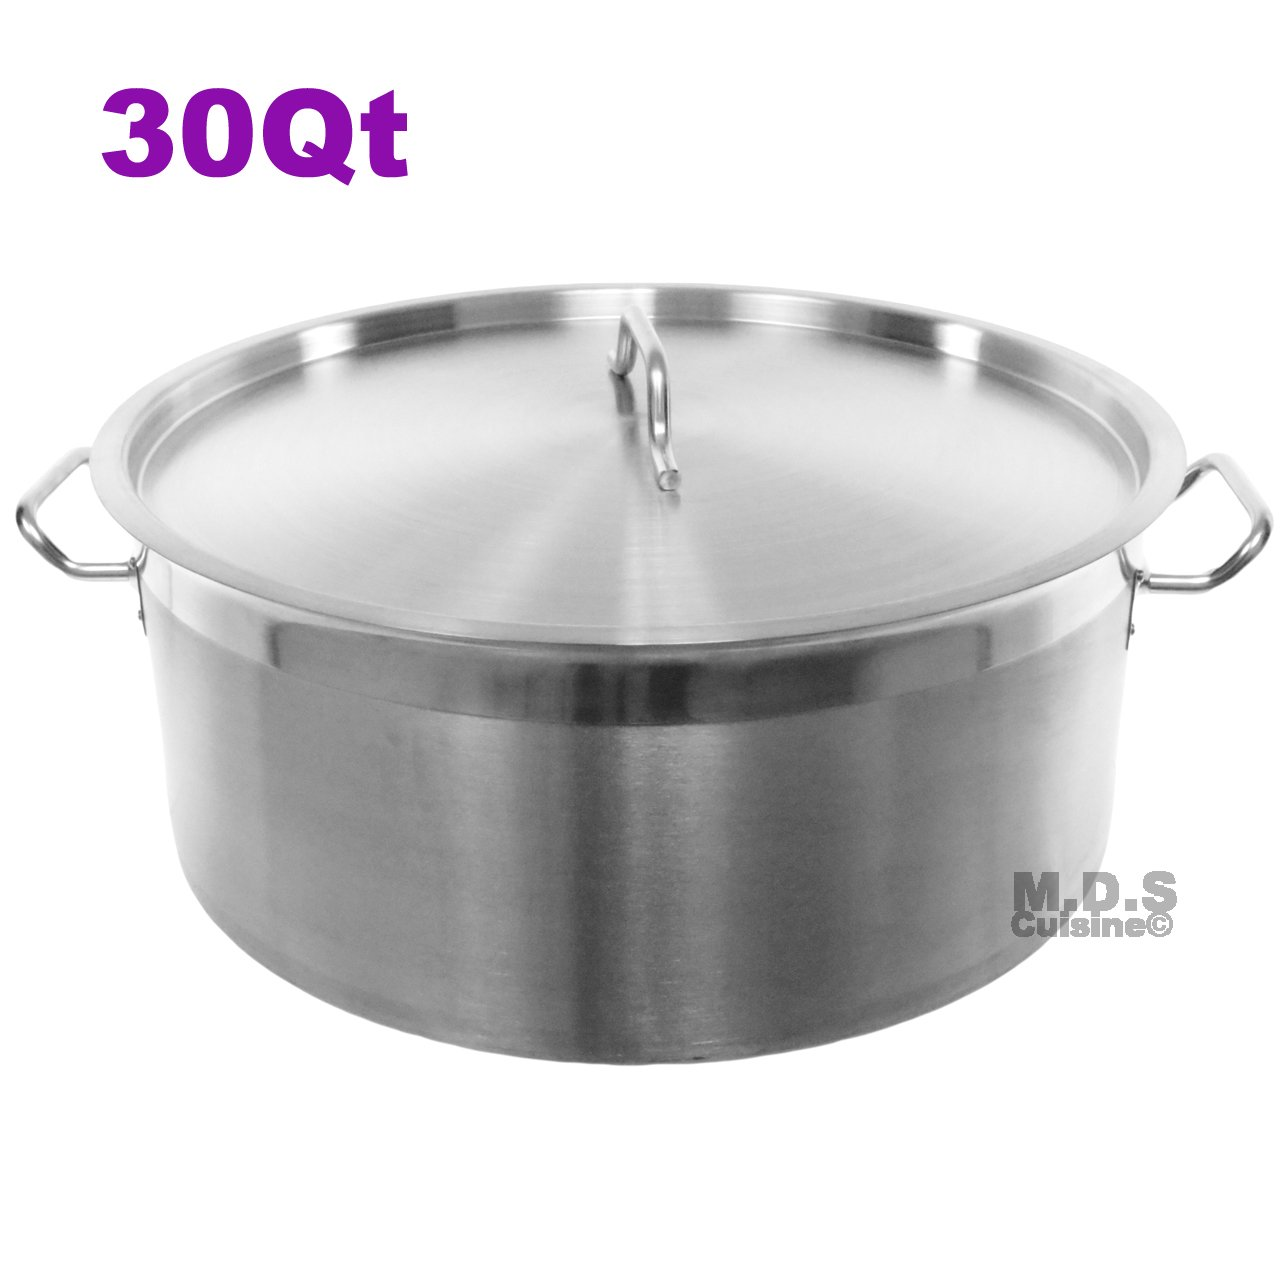 Dutch Oven Pot 30 Qt Heavy Duty Commercial Restaurant Capsulated Bottom w/Lid Traditional Olla Brushed Stainless Steel Low Pot Stockpot